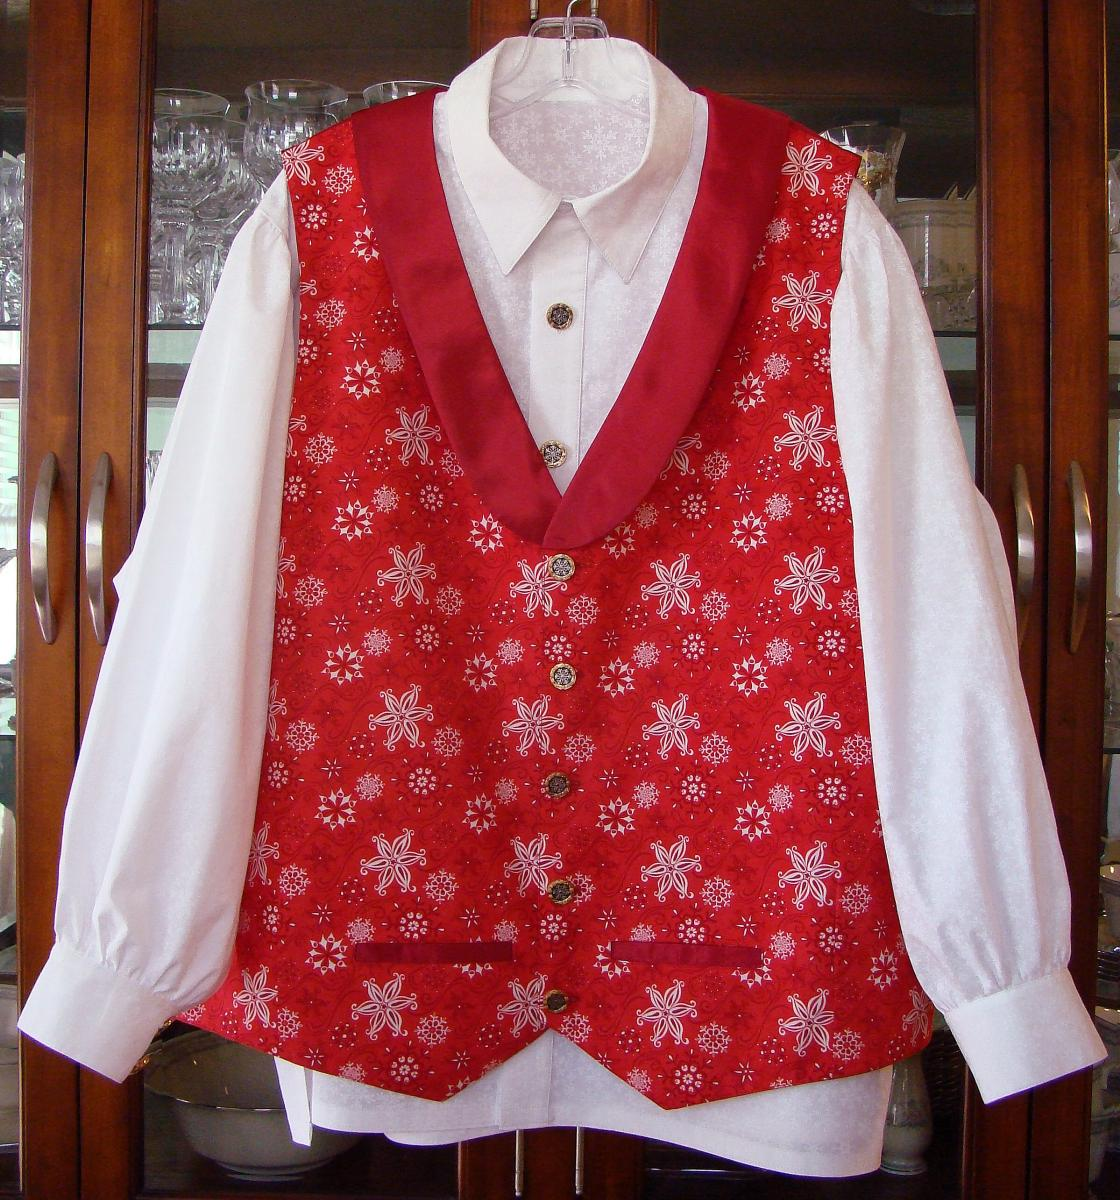 Western Vest & Snowflake shirt for LSS BobMcMasters